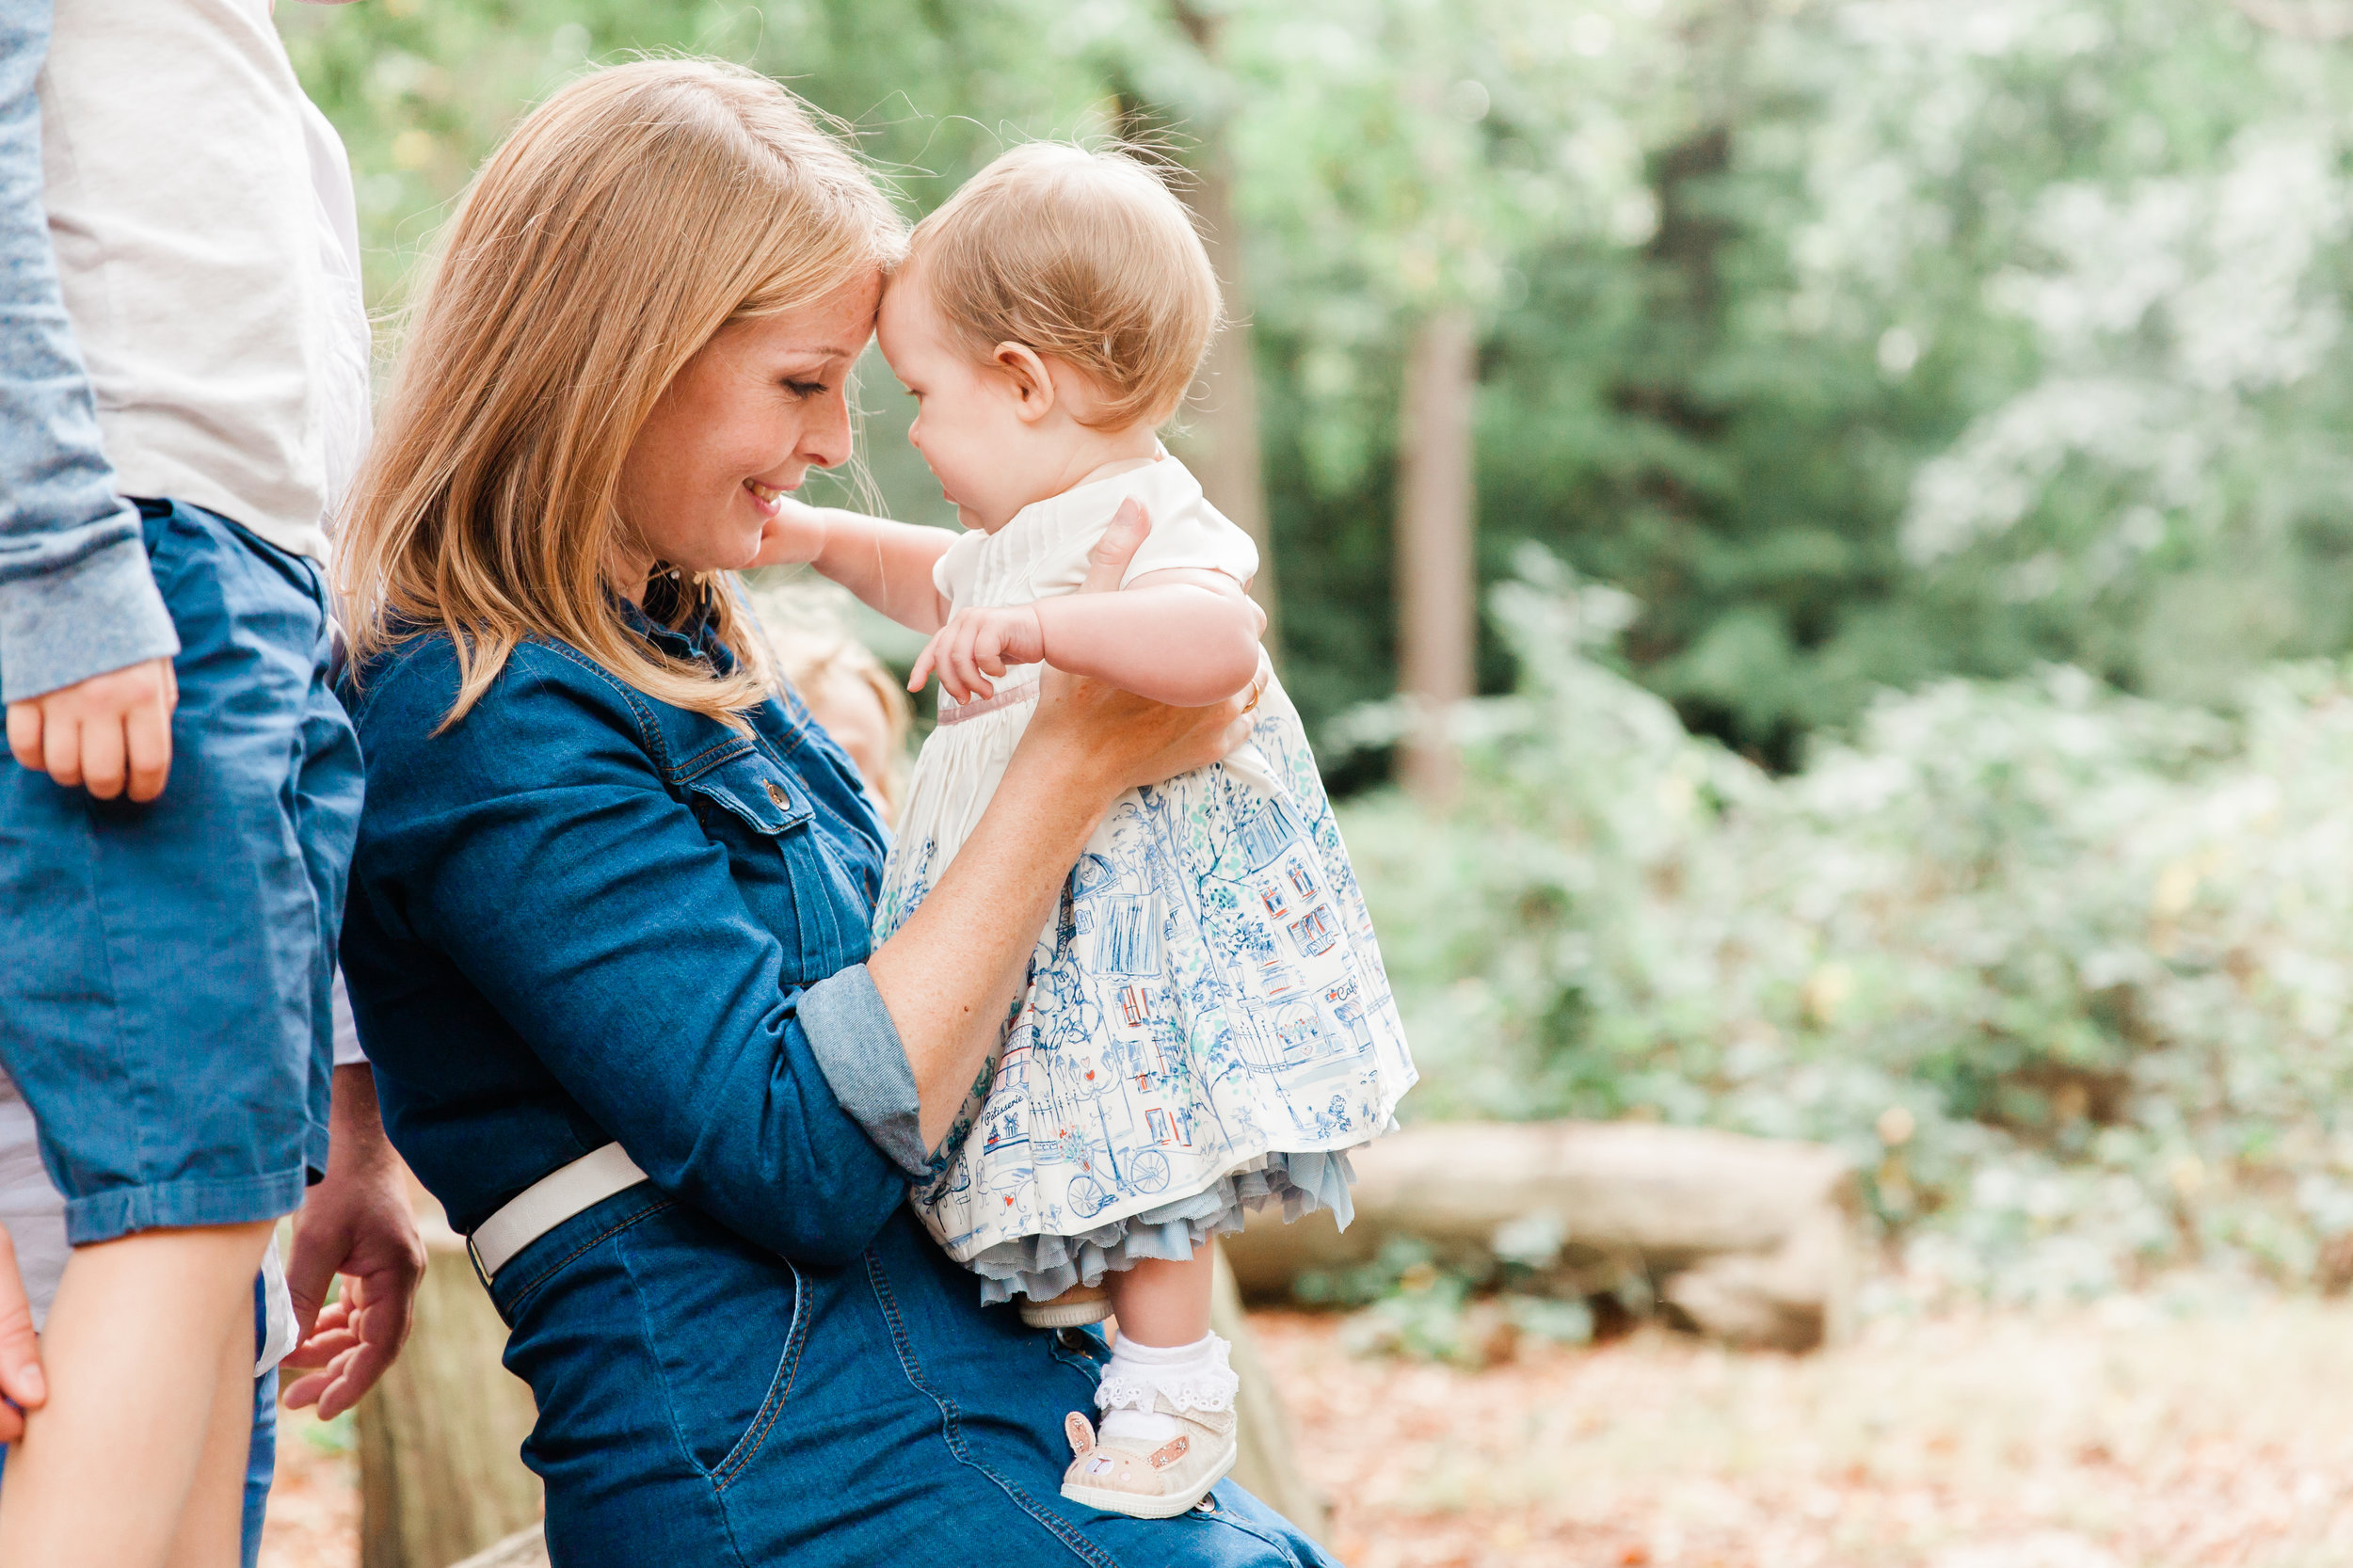 outdoors_family_photography_surrey.jpg